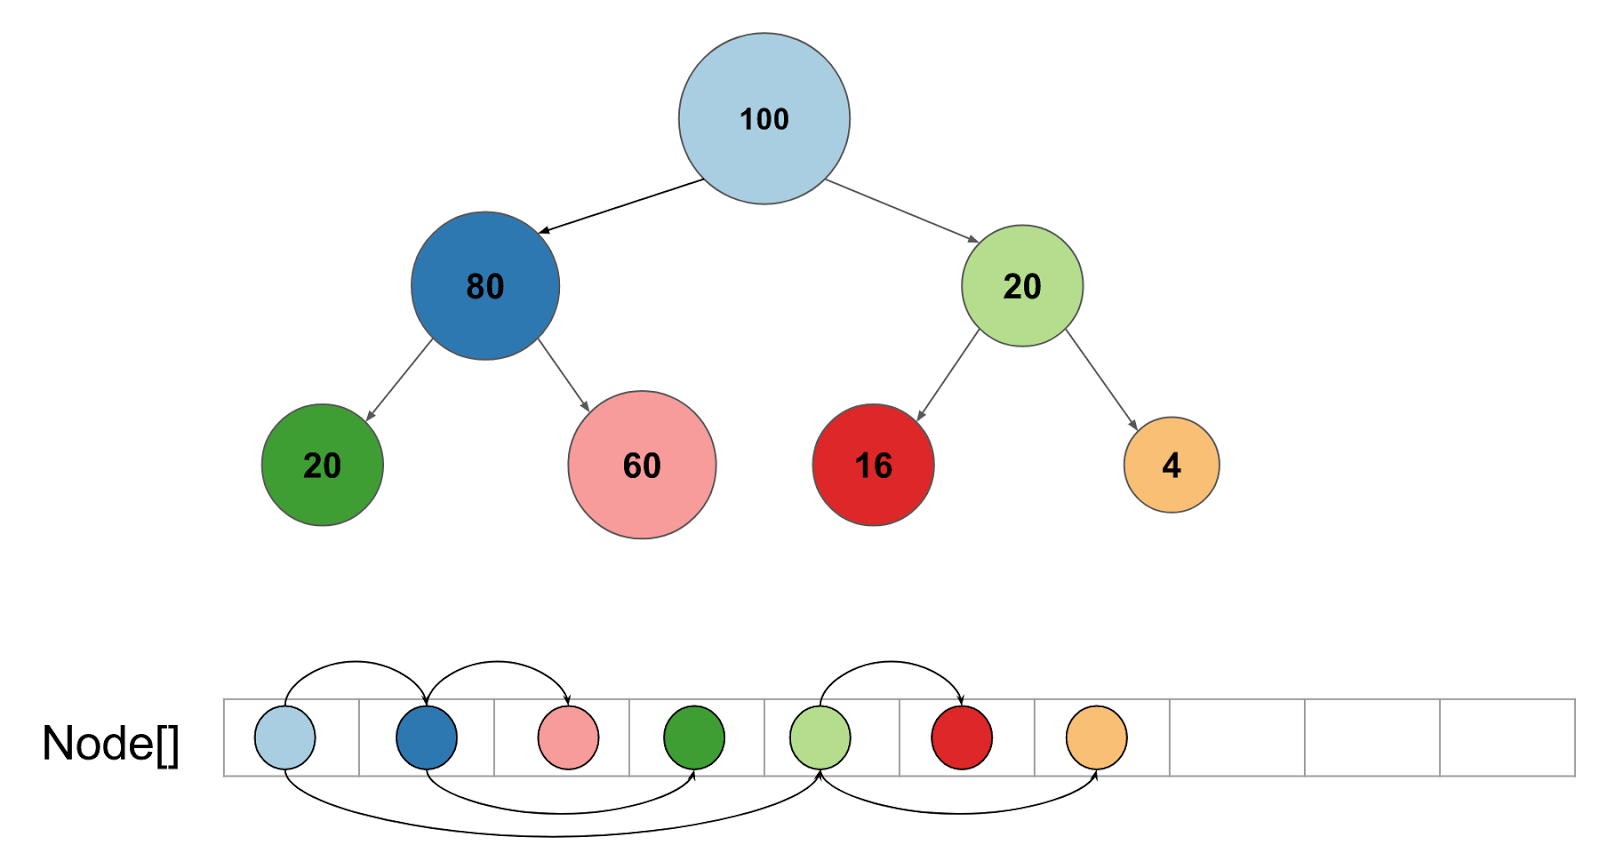 Figure 1. Each node is associated with a cover statistic that correlates with the number of instances at each node. Children with more instances are placed next to their parent in memory which makes the tree ordering cache friendly. The number in each node indicates the cover for that node.